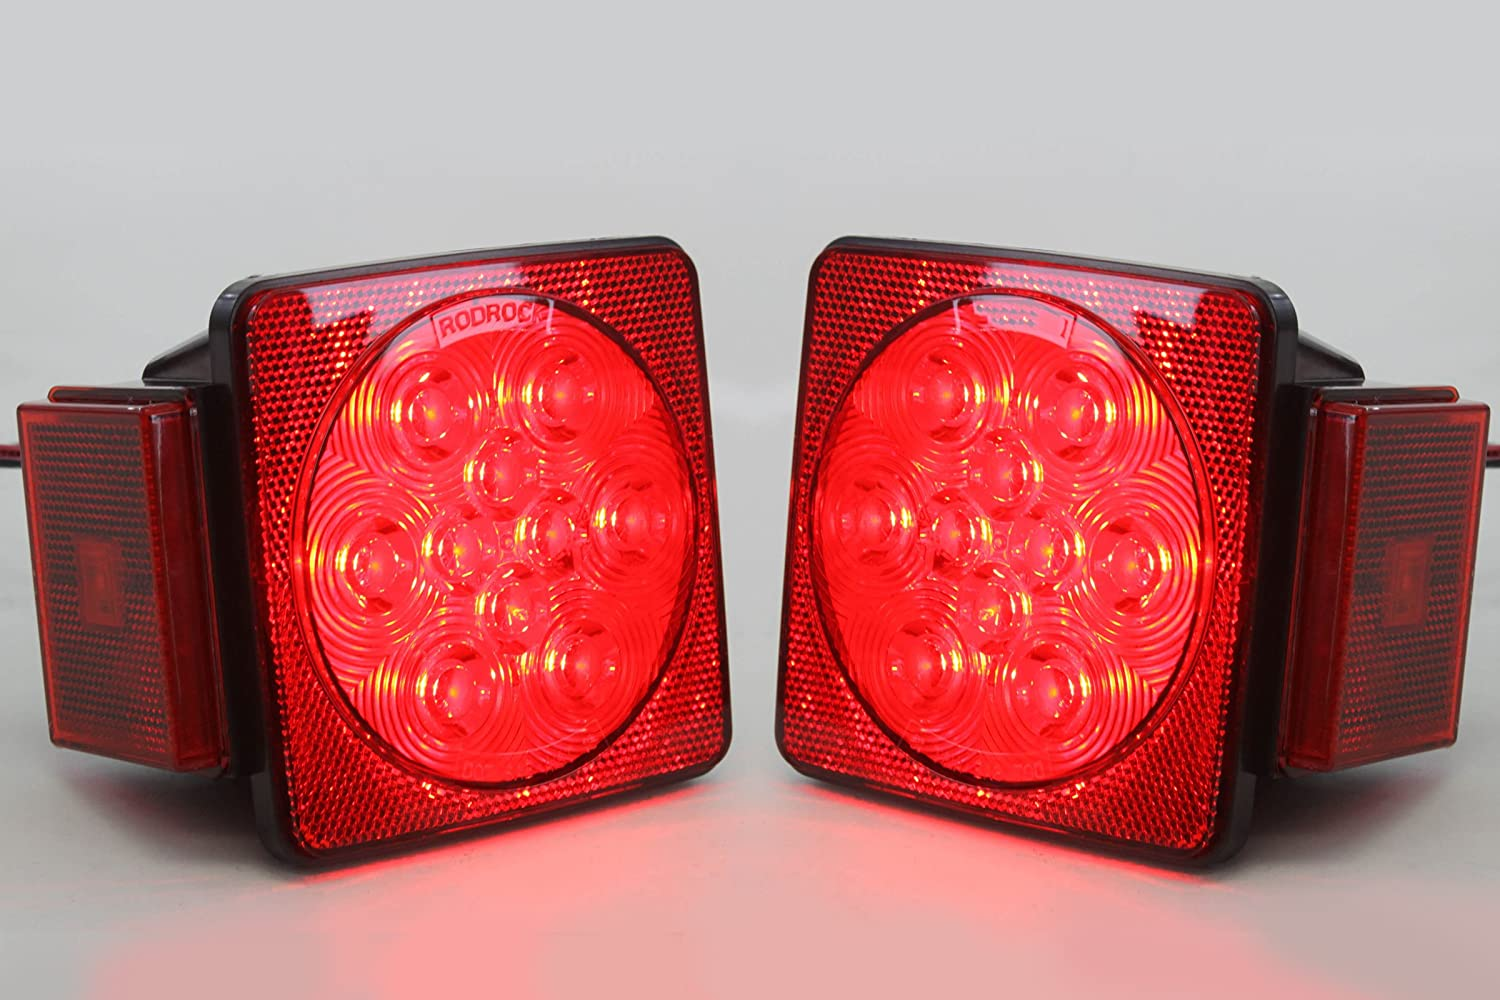 Led Square Red Trailer Turn Signal Stop 2 Light Dot Flat Four Pole Wiring Connection Kit Utility Brake Compliant Set L R Submersible Under 80 Automotive